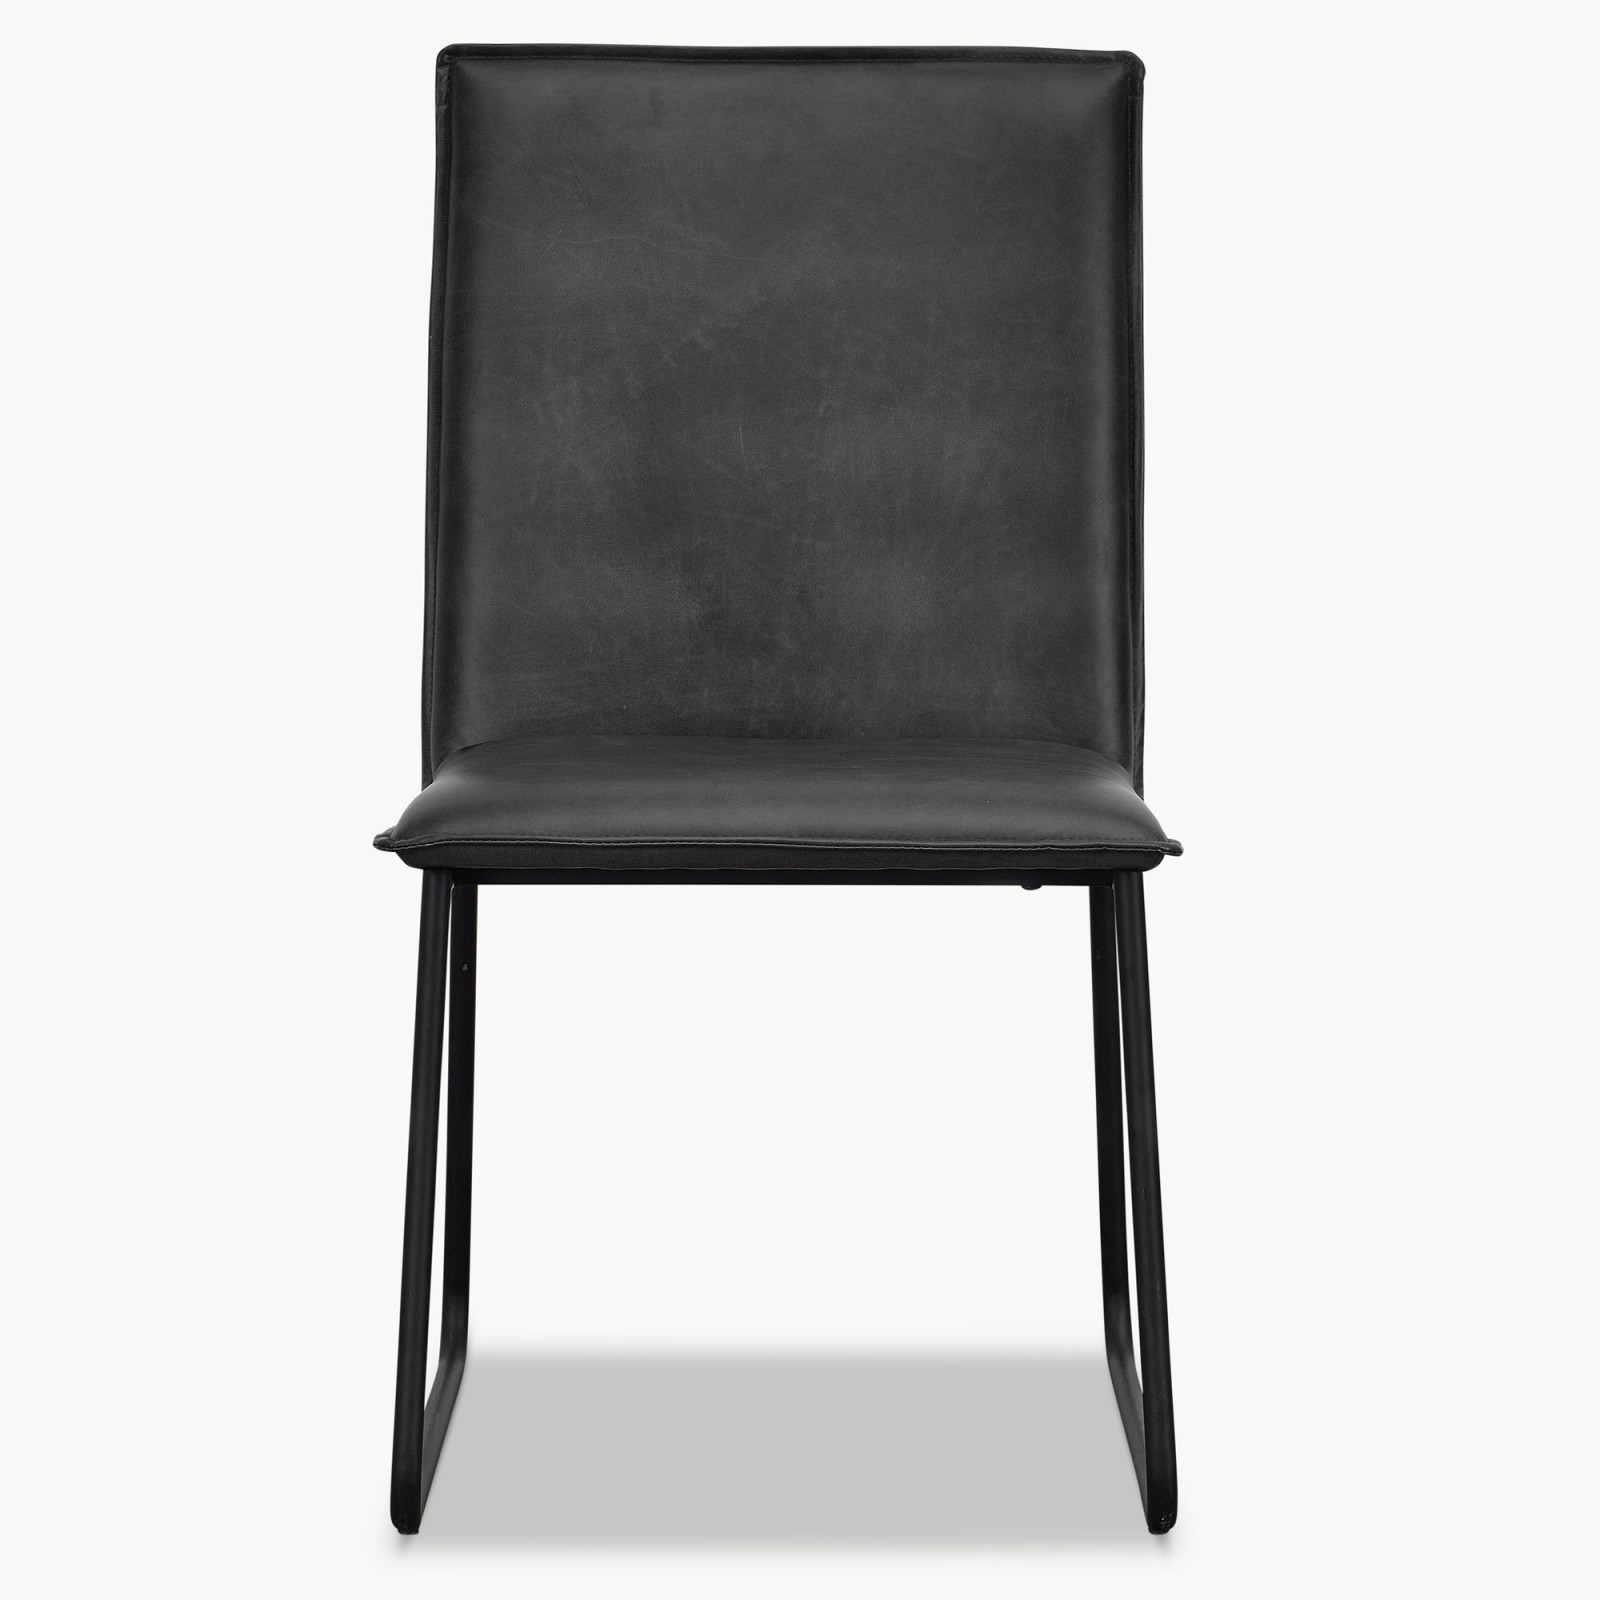 Black Leather Dining Chairs Ow Kingswood Black Leather Dining Chair